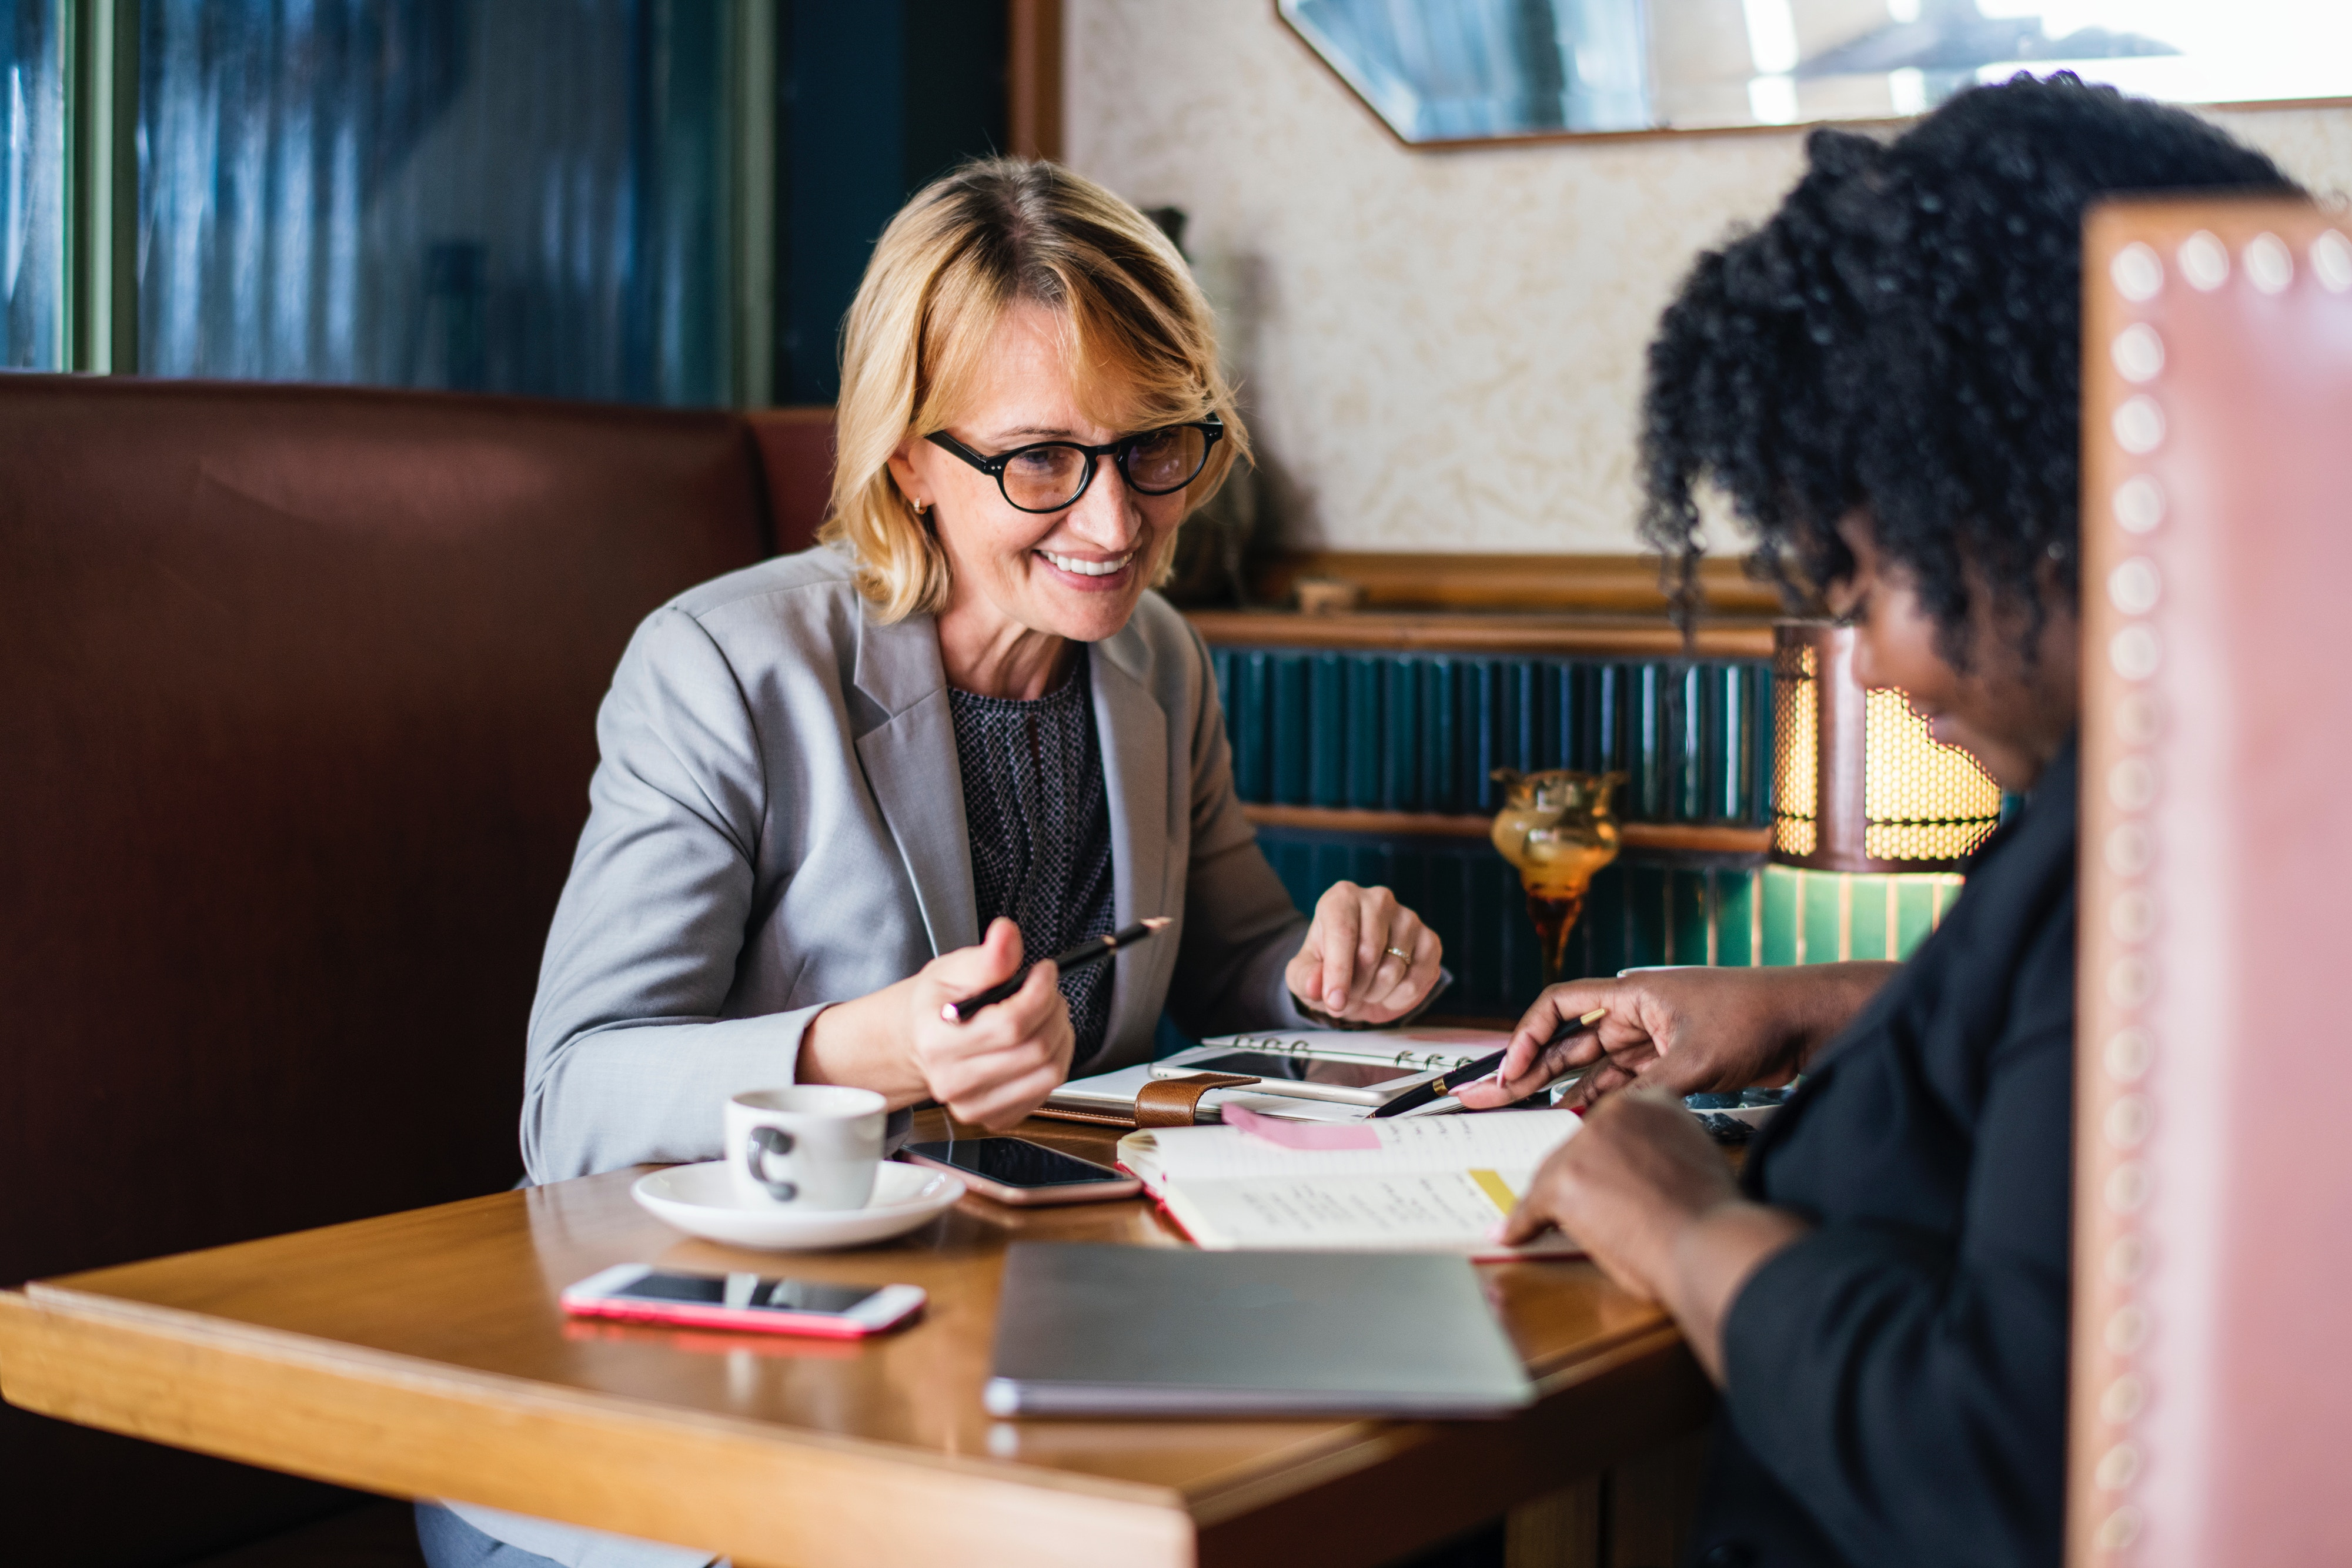 Woman mentoring woman over coffee